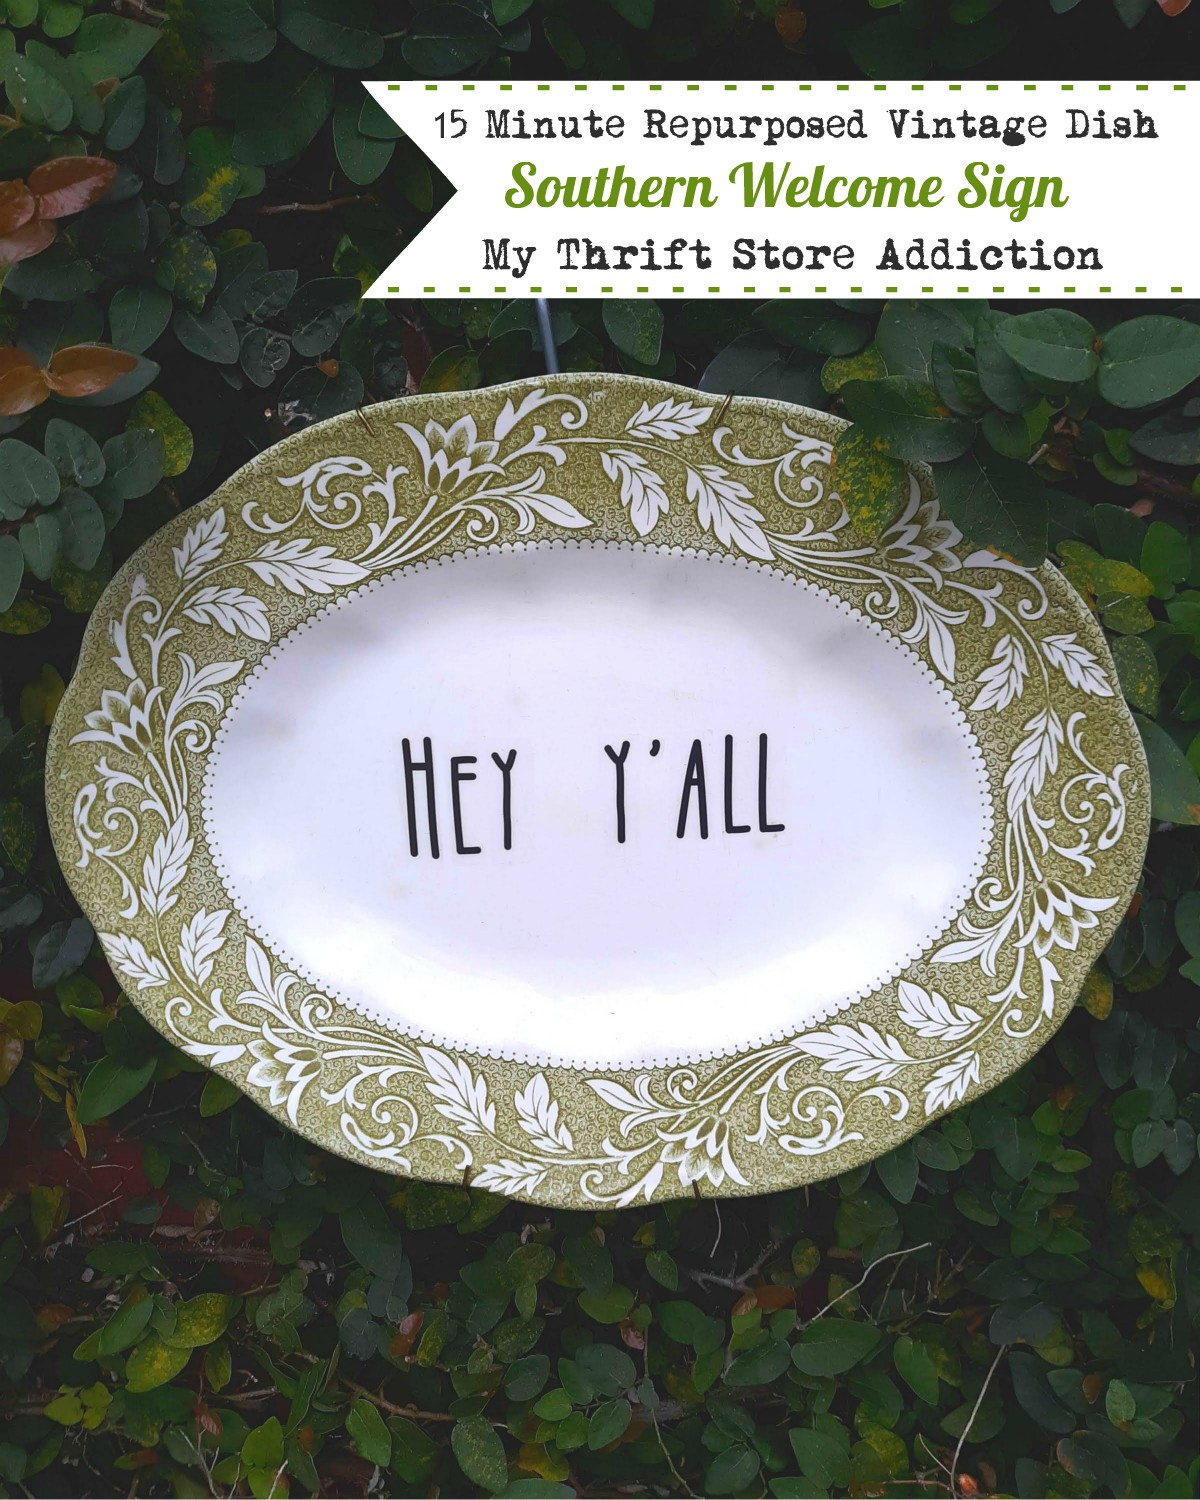 Repurposed vintage dish southern welcome sign